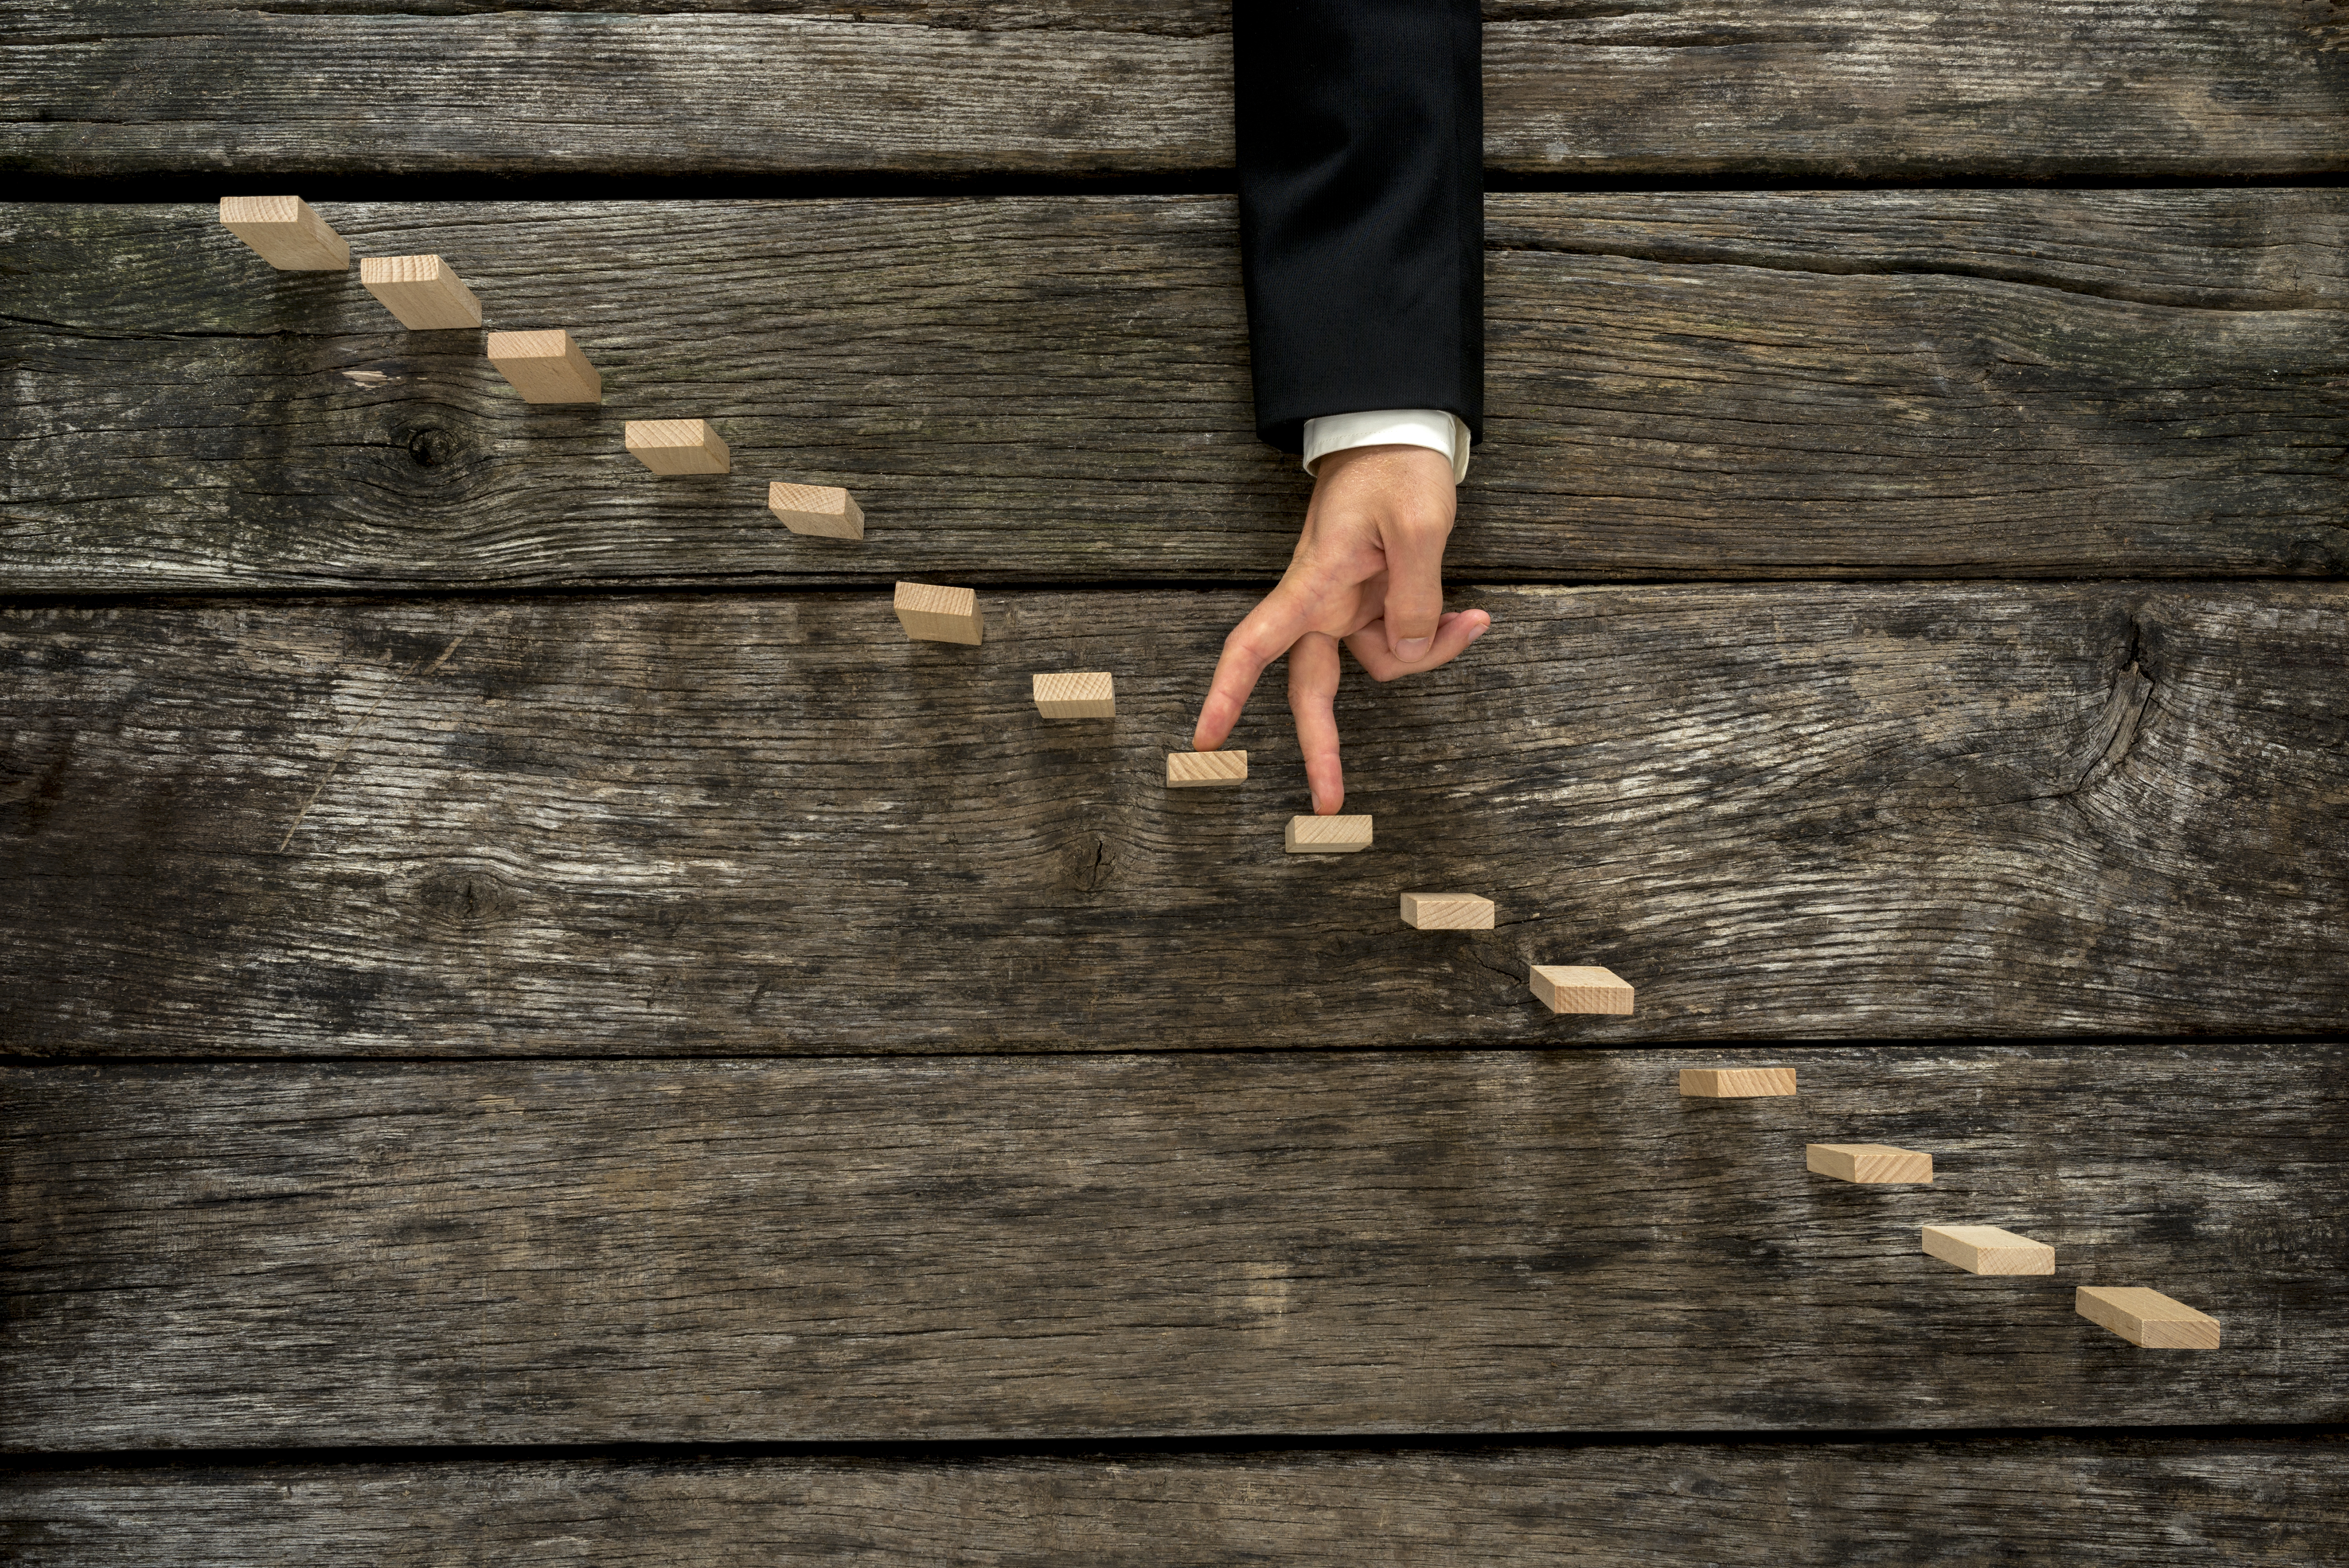 Businessman walking his fingers up wooden steps or pegs resembling a staircase mounted in rustic wooden boards in a conceptual image of success promotion and advancement.